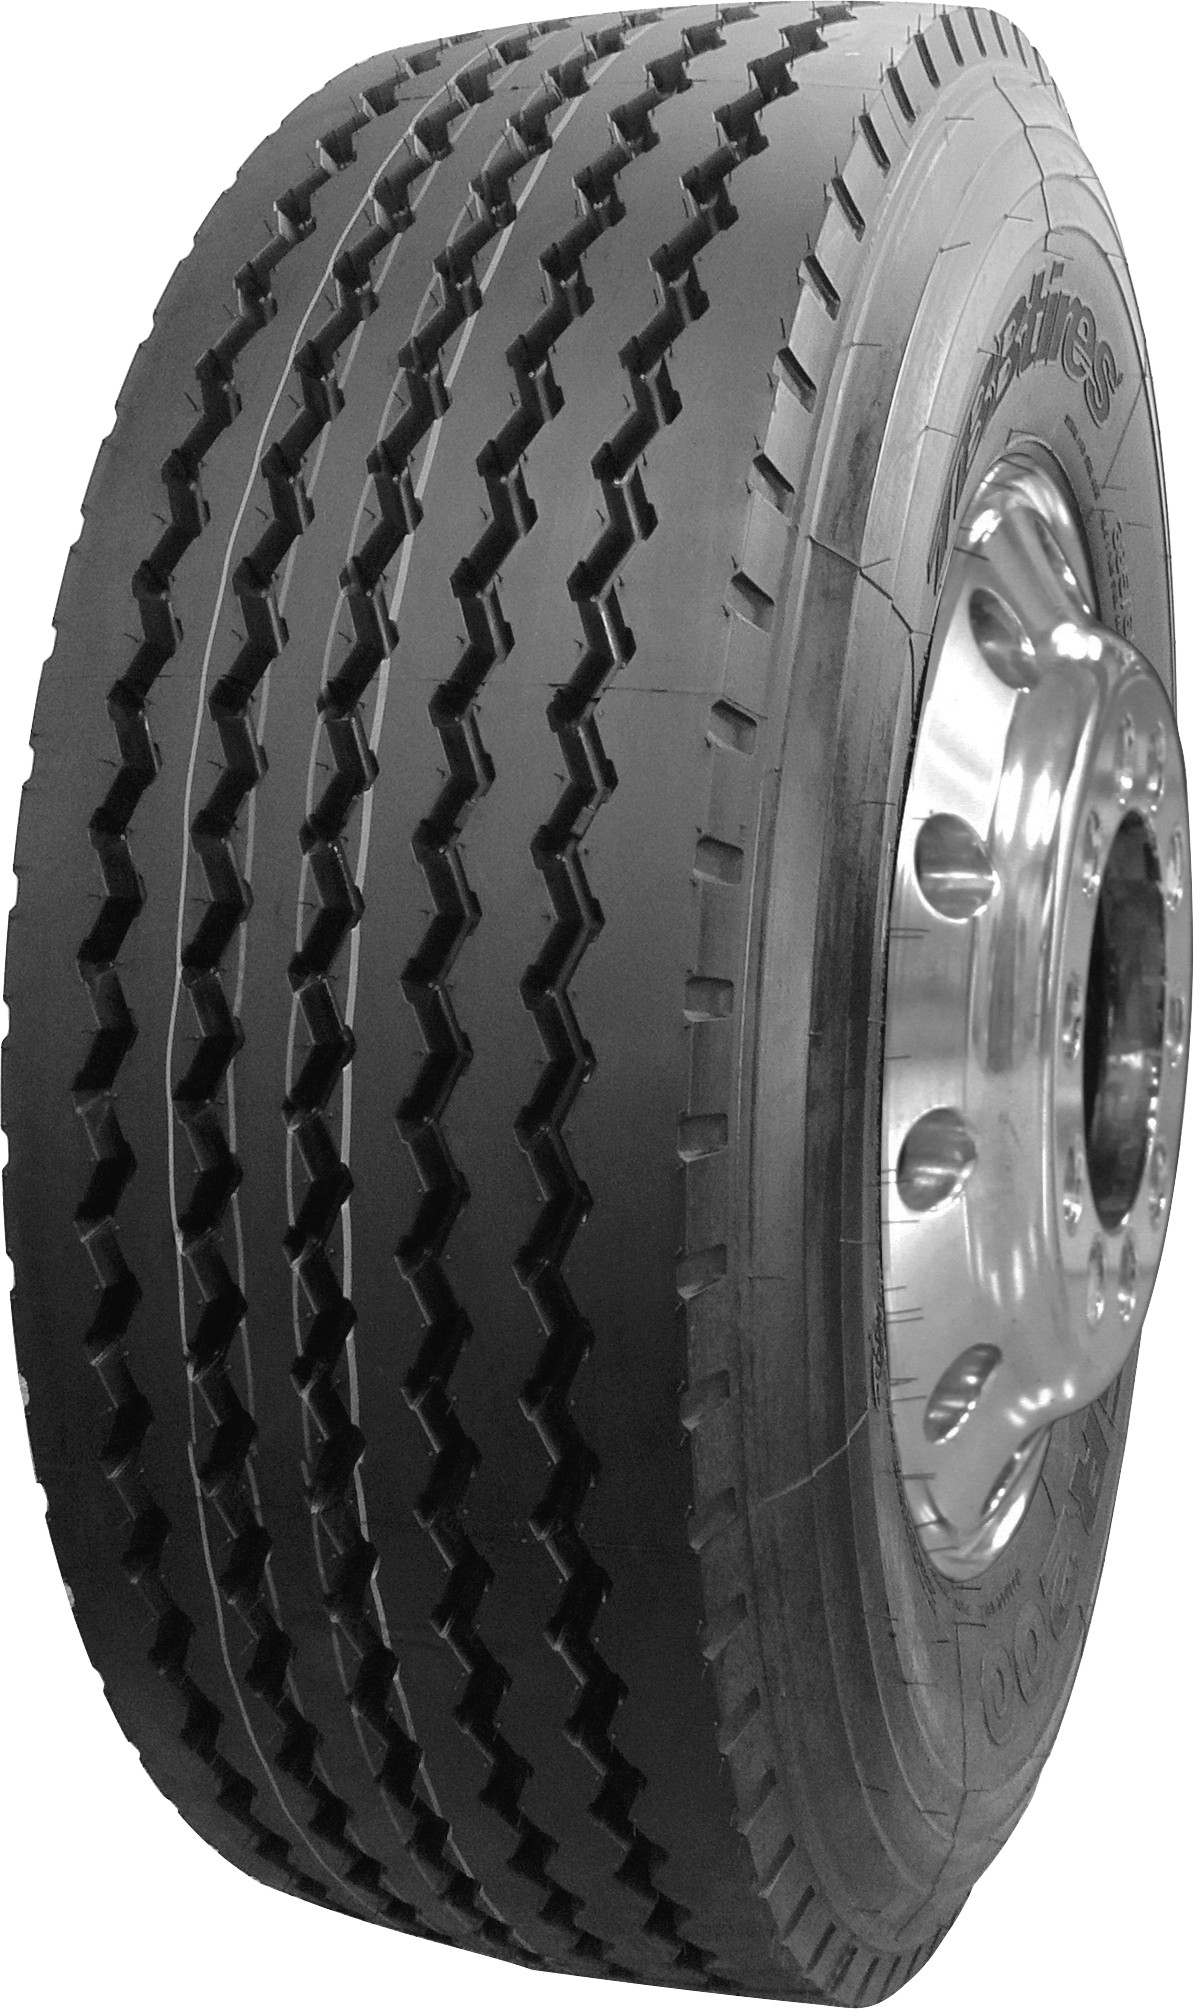 385/65R22.5-20 GR200 All-Position Wide Base Radial